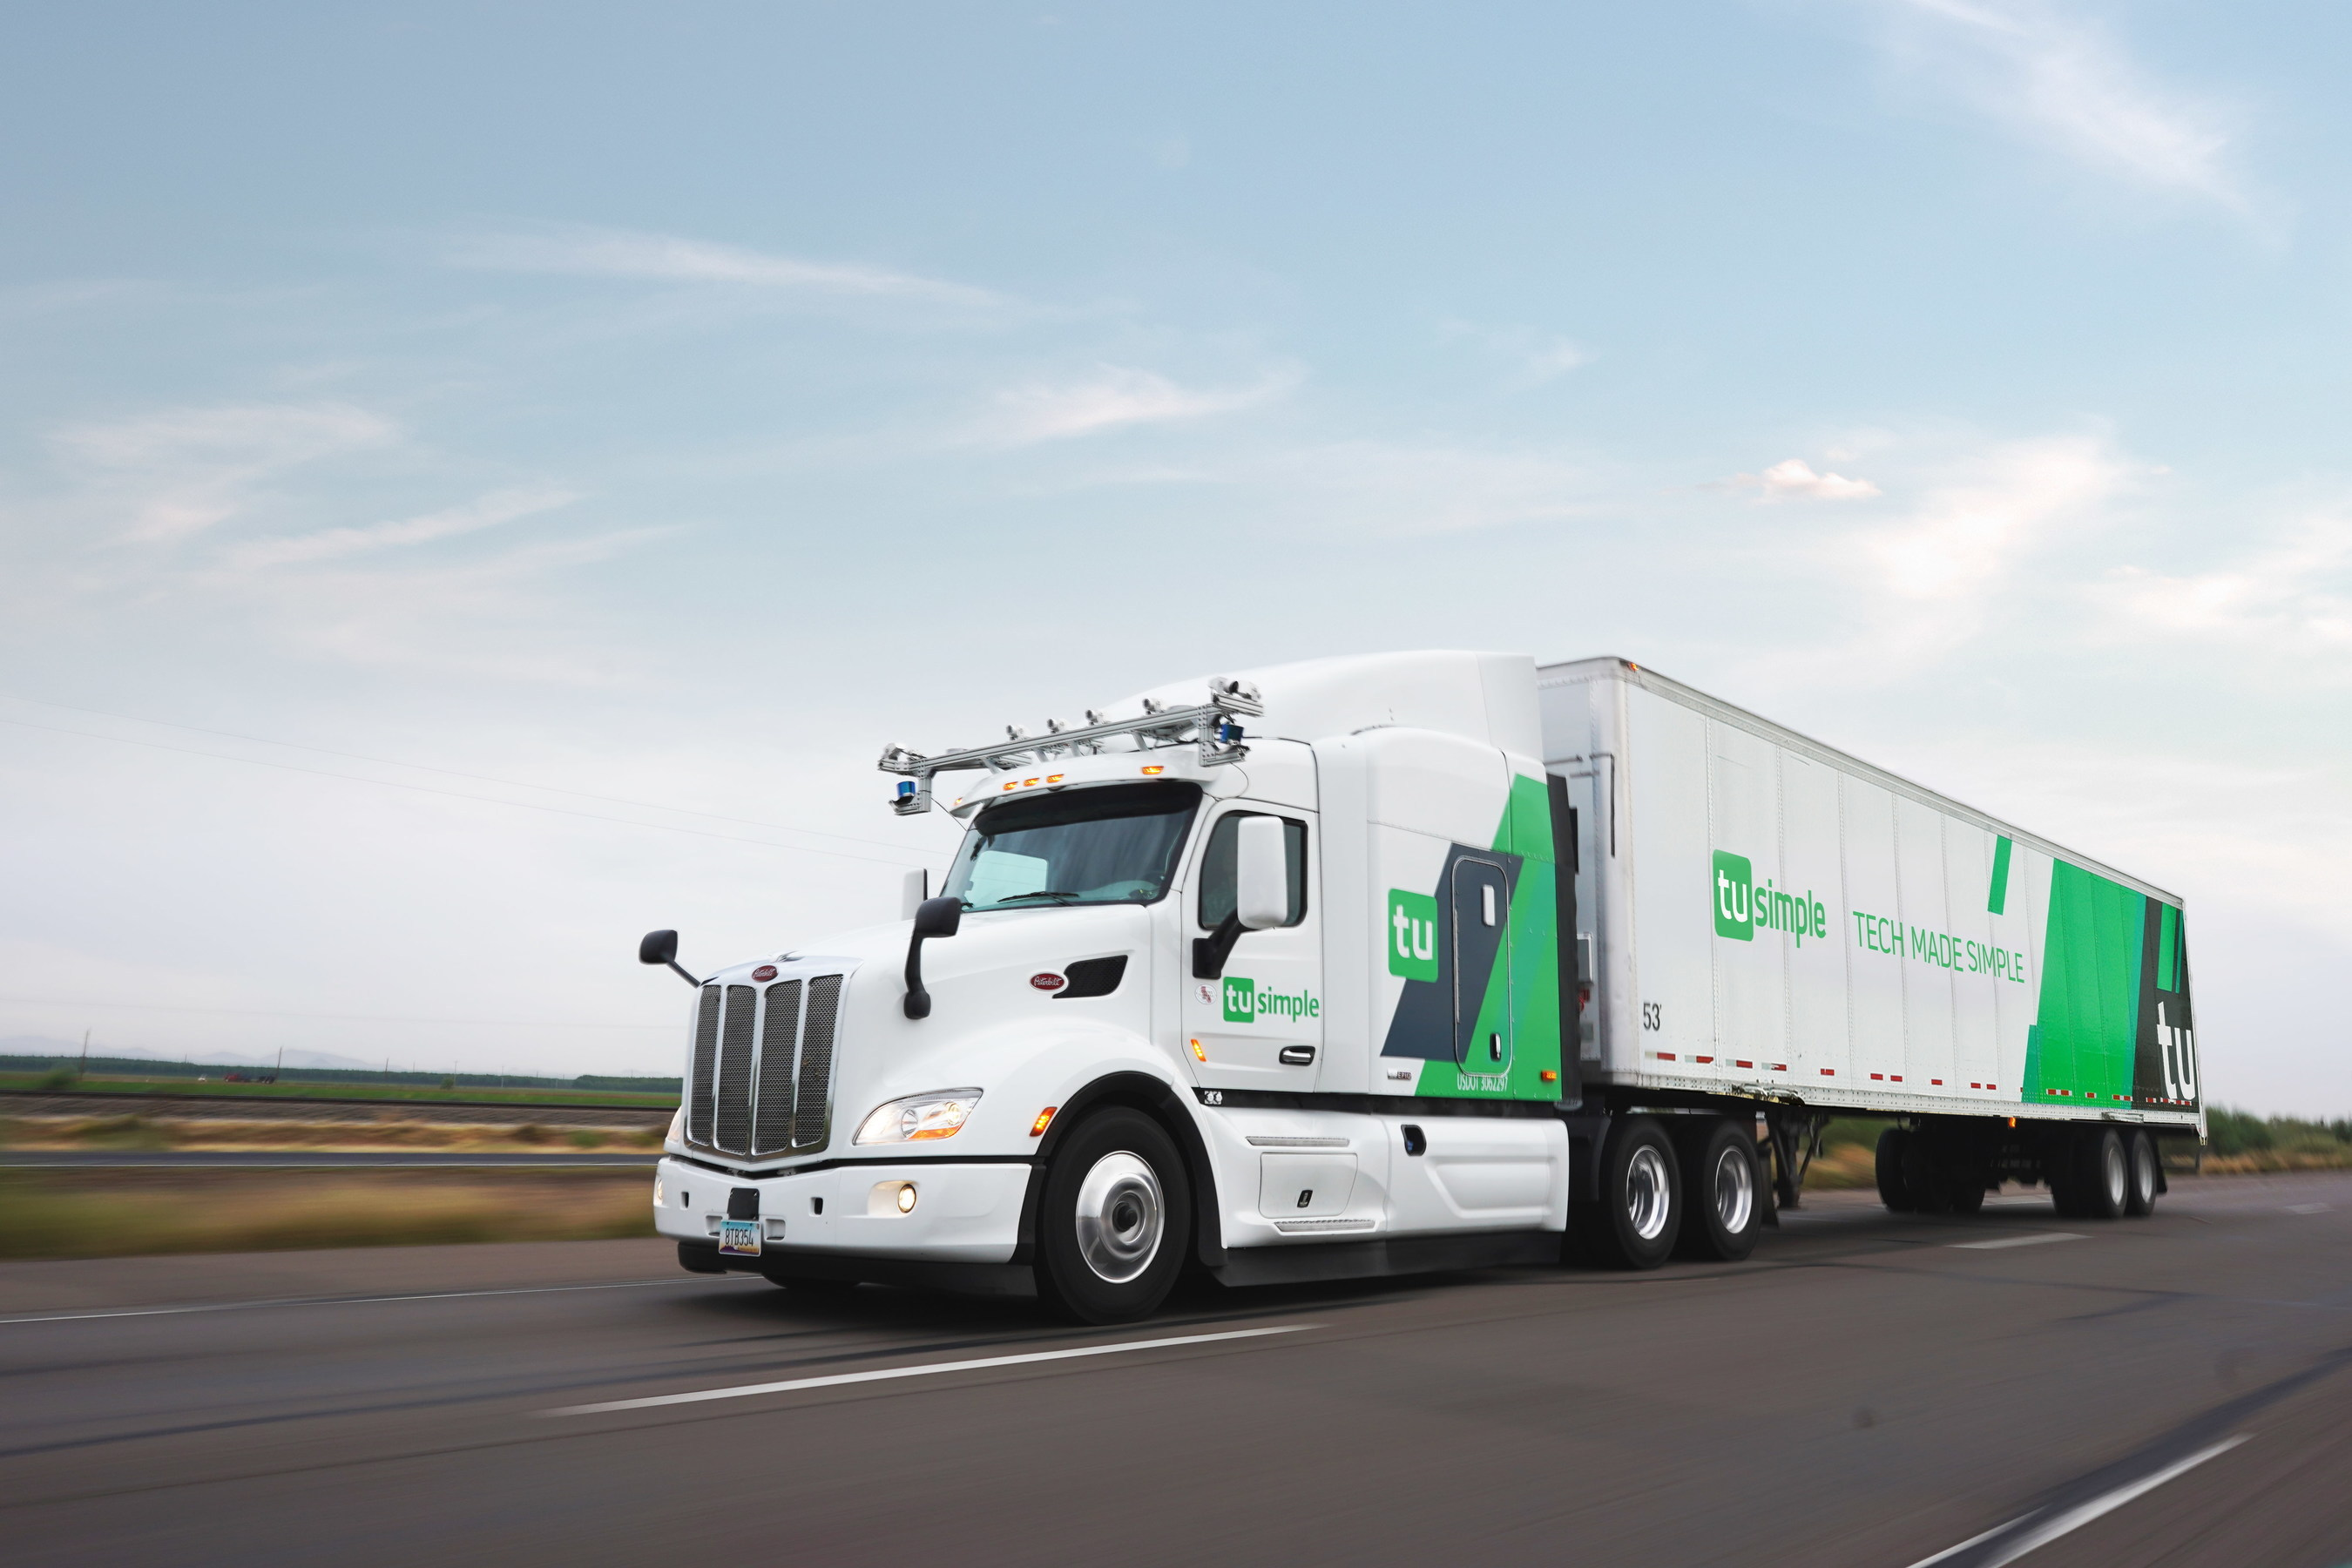 Tusimple Building Safest Self Driving Truck With 1 000 Meter